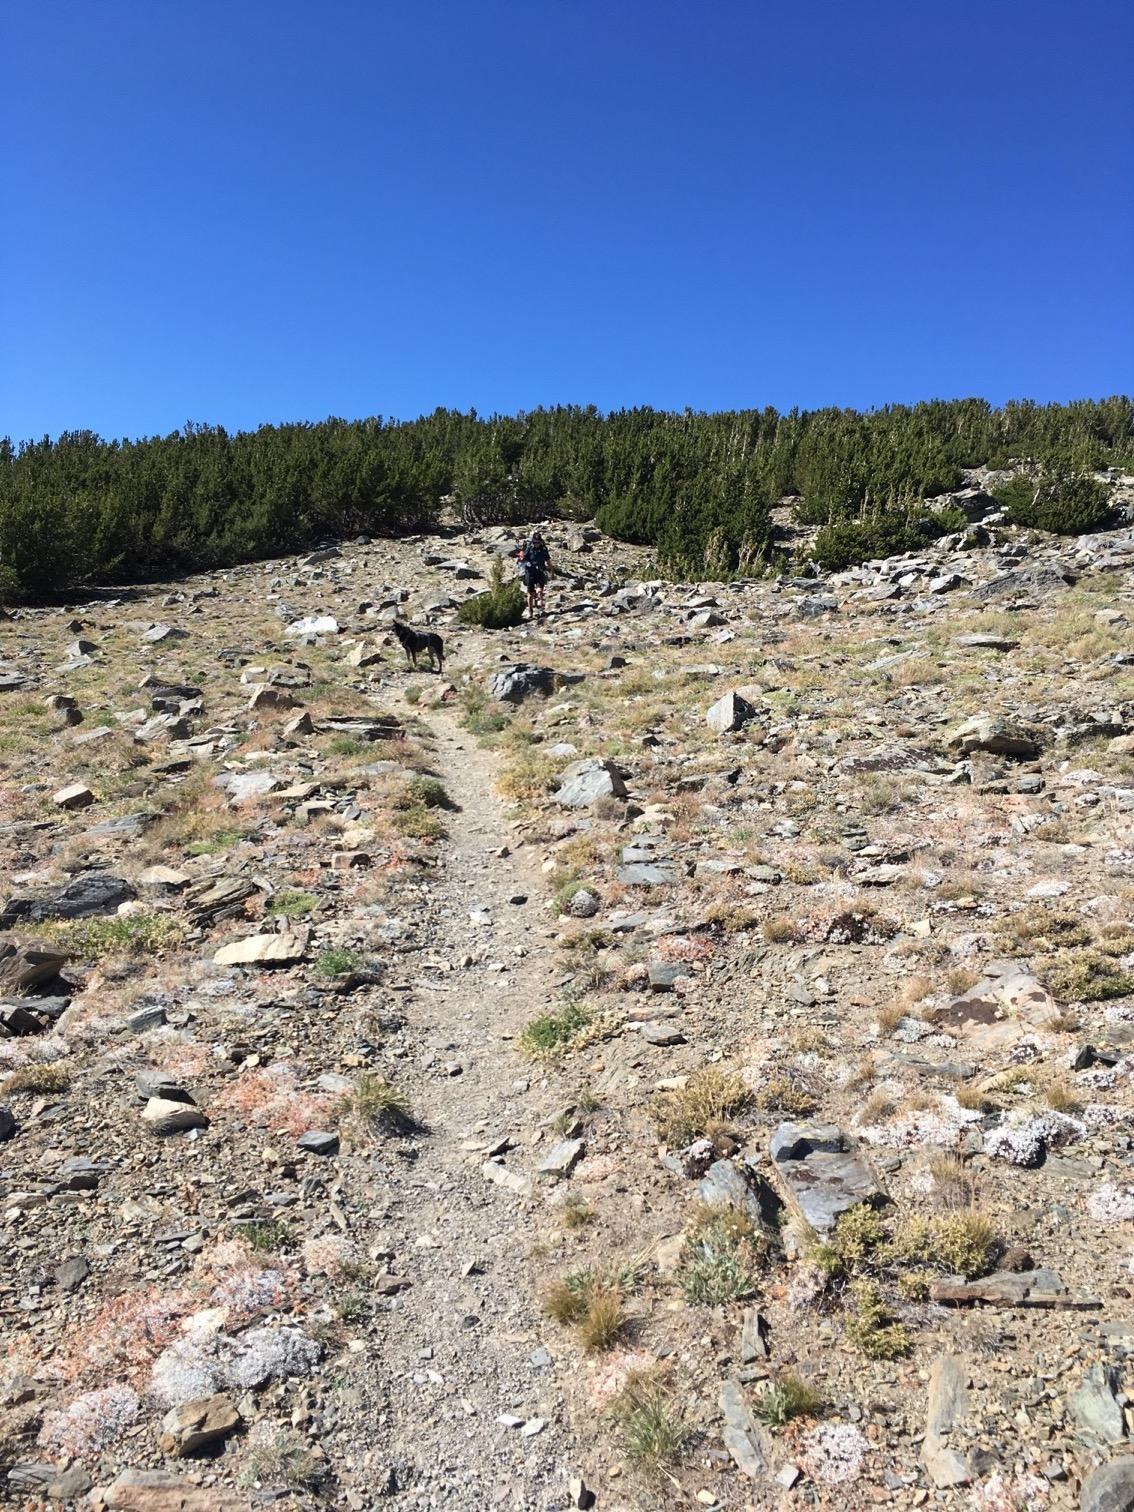 Connecting to Rim Trail